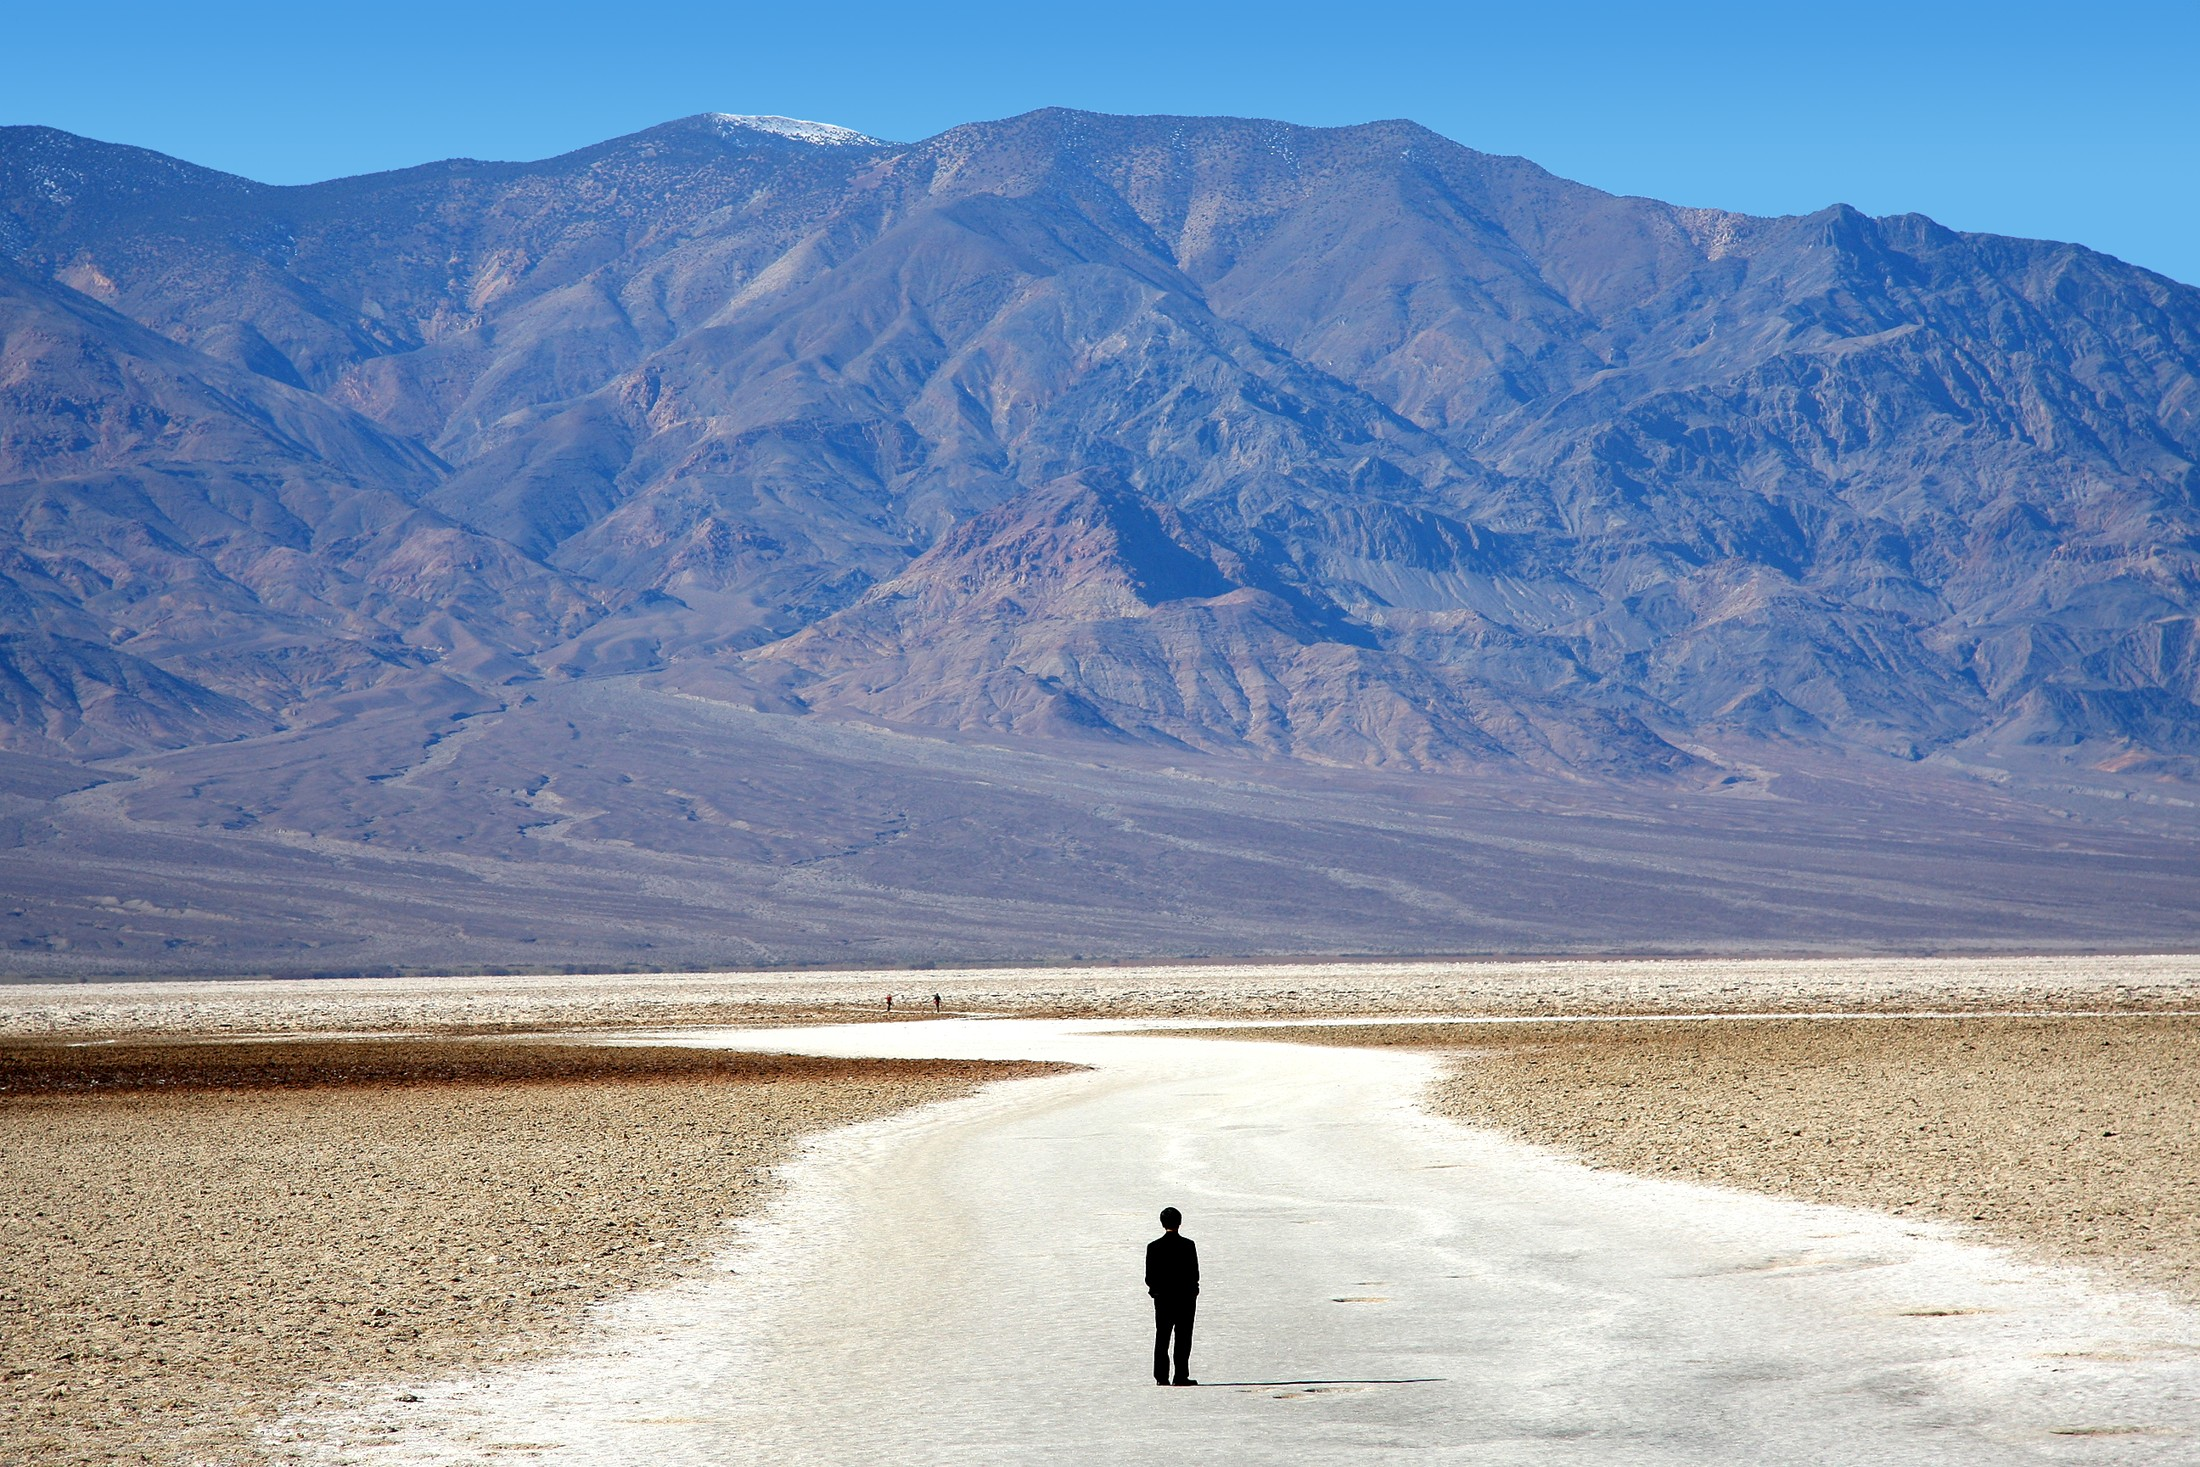 https://bubo.sk/uploads/galleries/8379/badwater_desolation.jpg